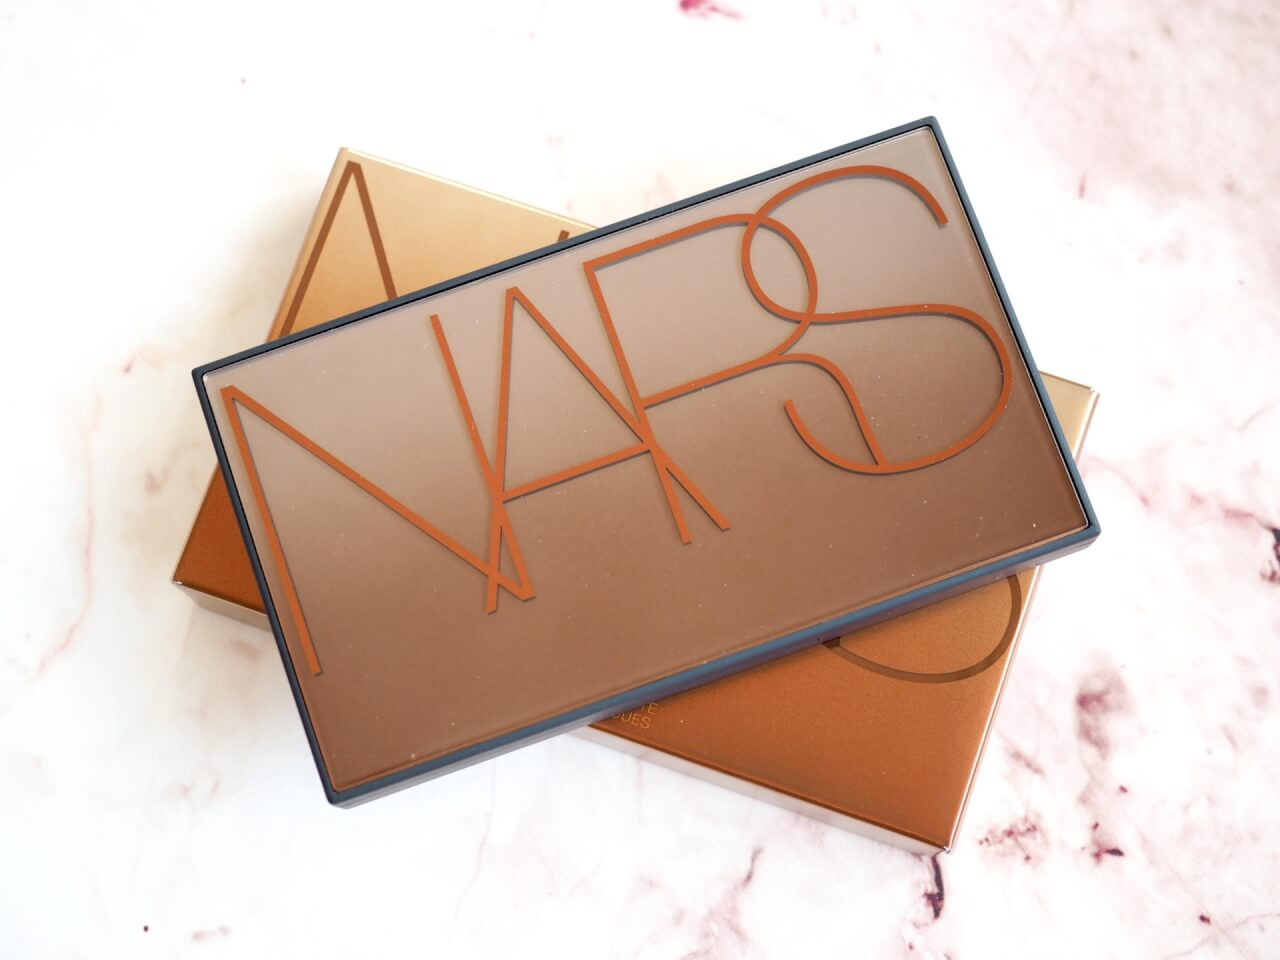 Nars Atomic Blonde